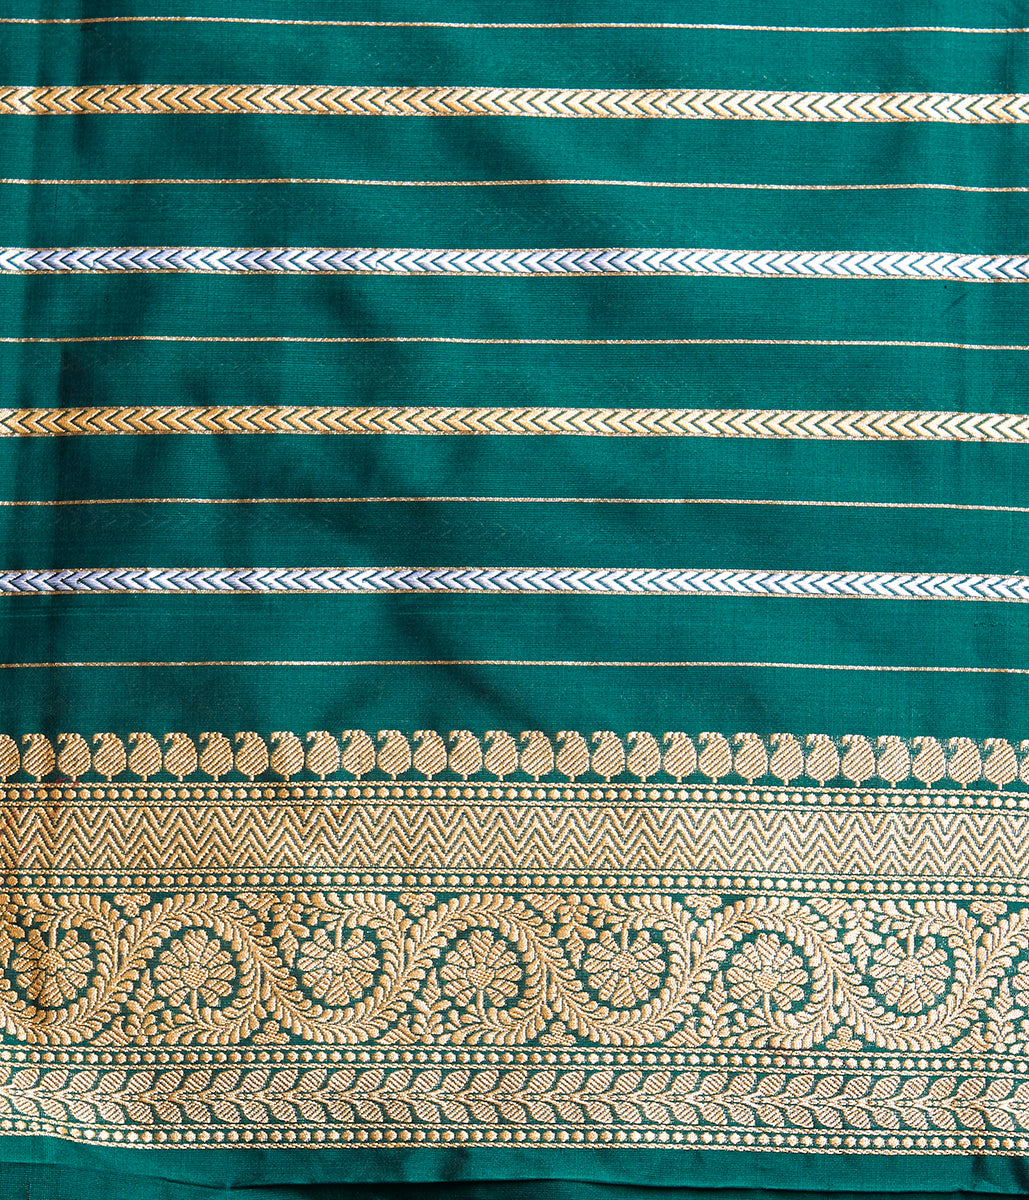 Handwoven Bottle Green Kadhwa Booti Saree with Floral Border